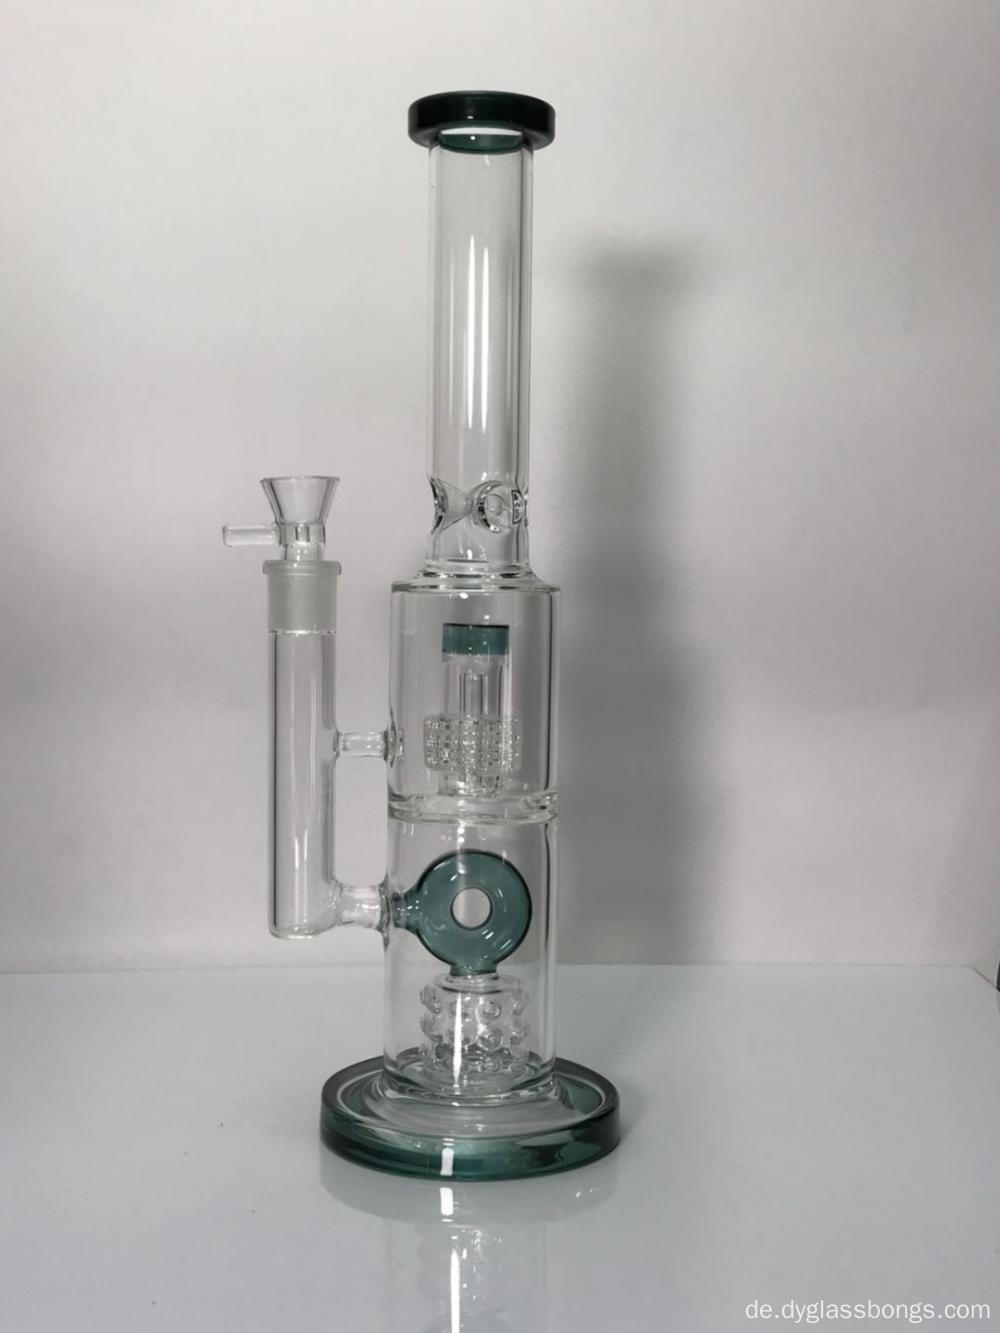 Zwei Kammer Zwei Filter High End Glasbongs